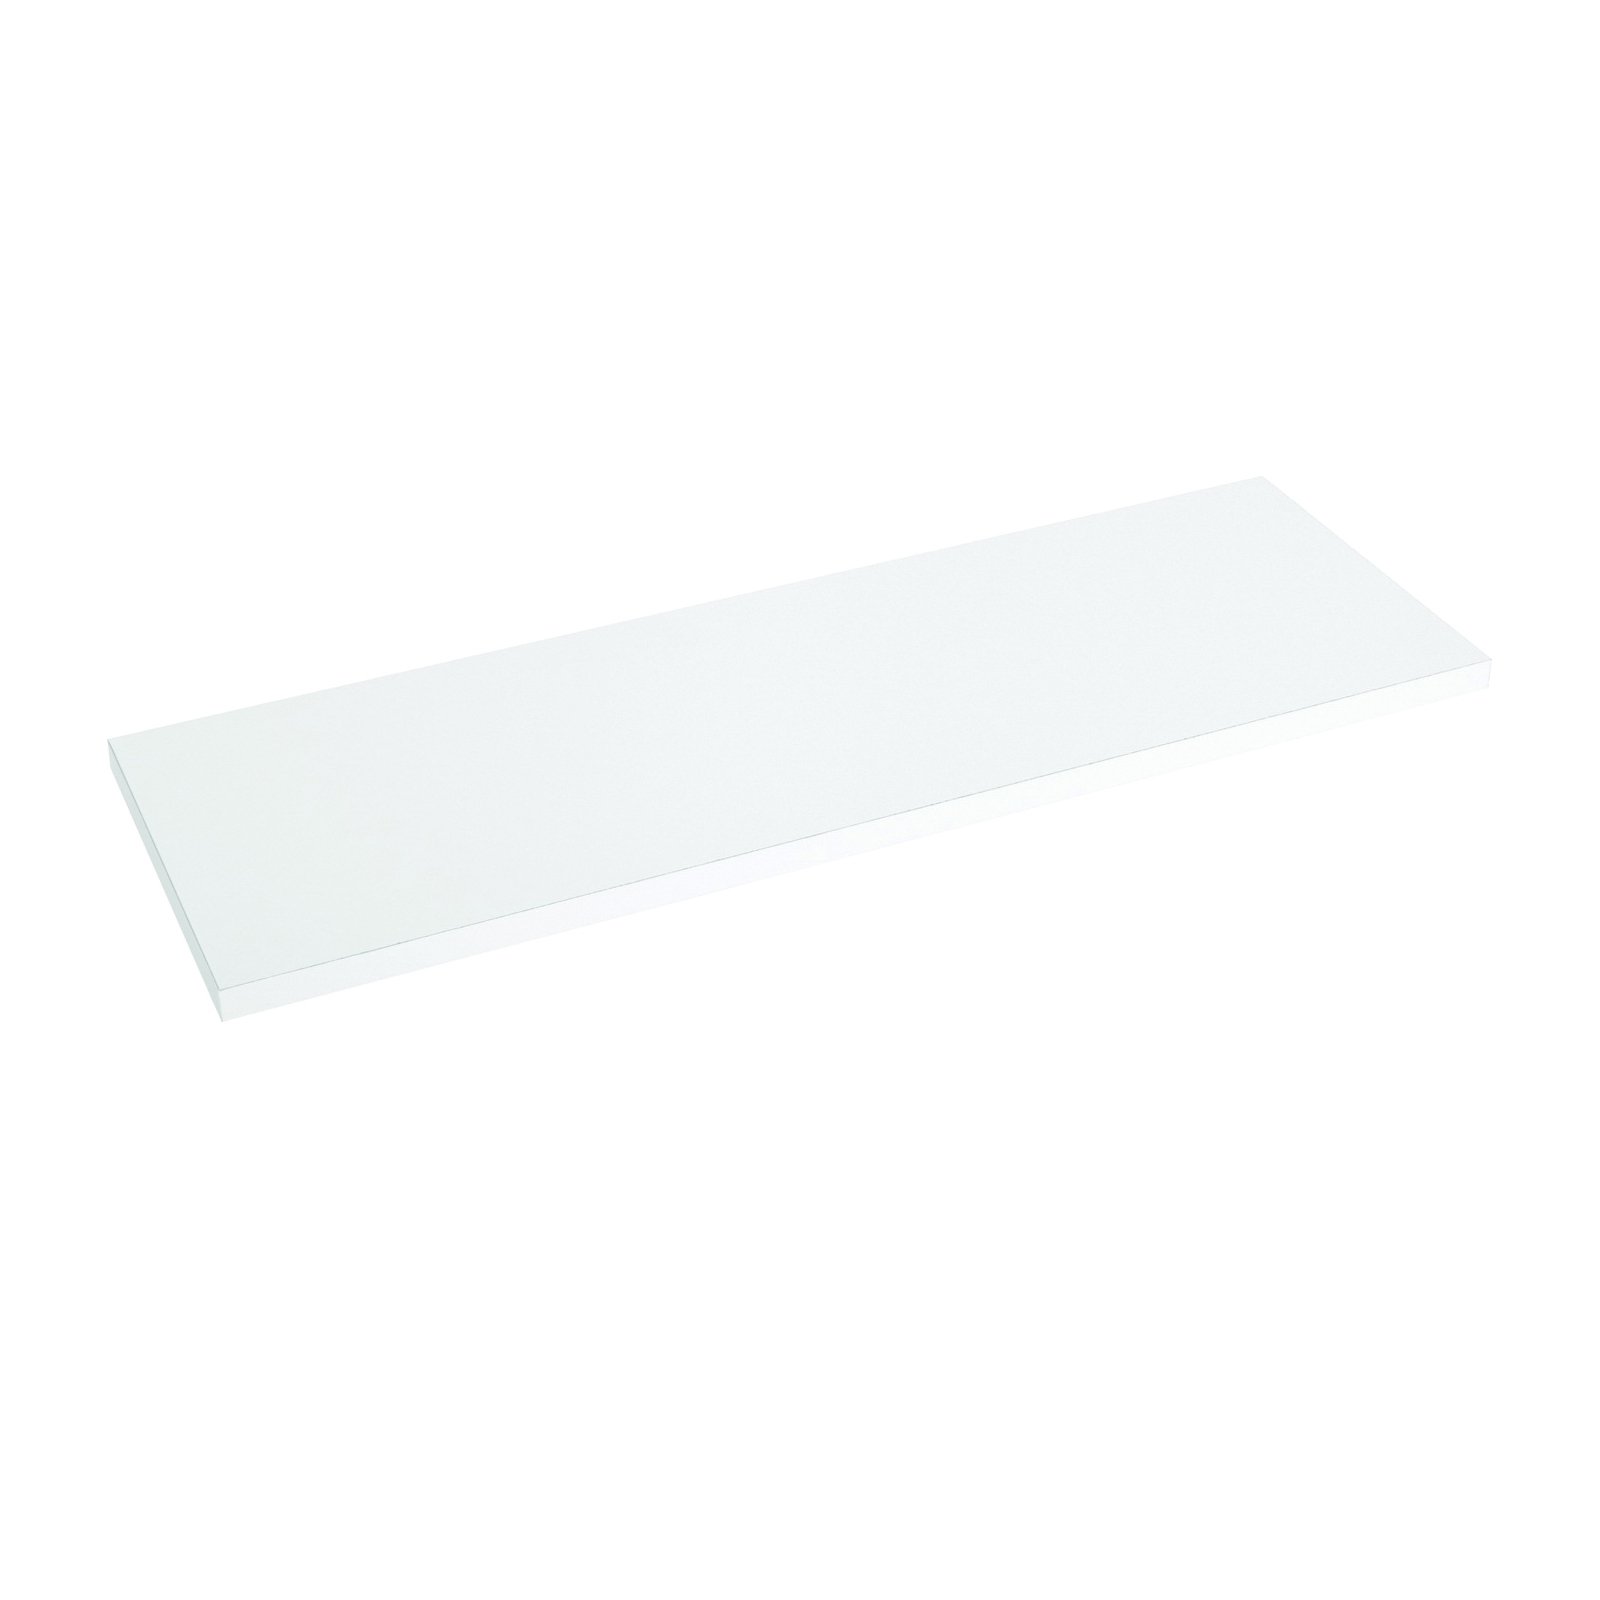 Picture of Knape & Vogt 1980 WH 10X48 Shelf Board, 200 lb, 5-Shelf, 48 in L, 10 in W, Particleboard